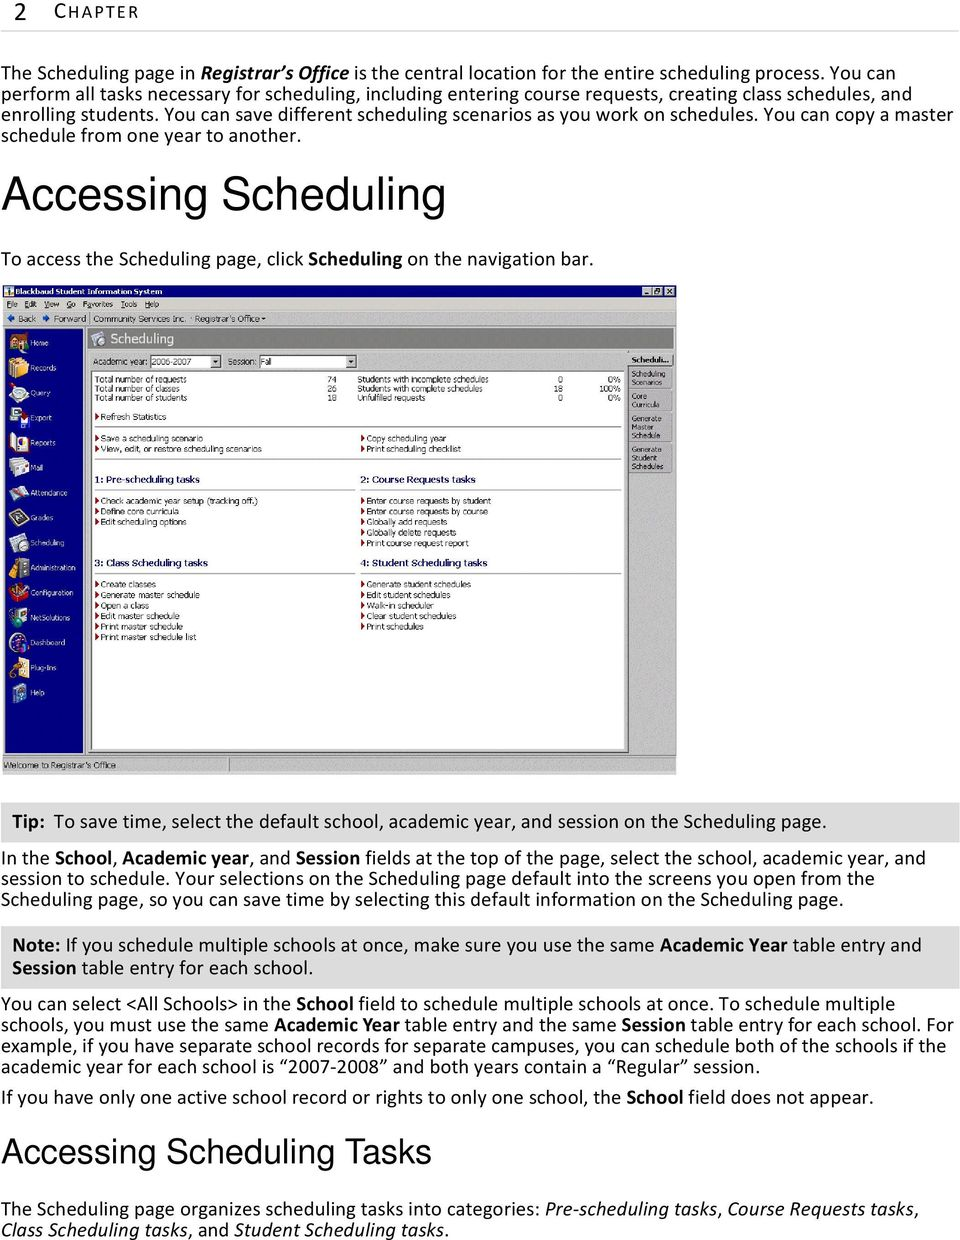 You can save different scheduling scenarios as you work on schedules. You can copy a master schedule from one year to another.